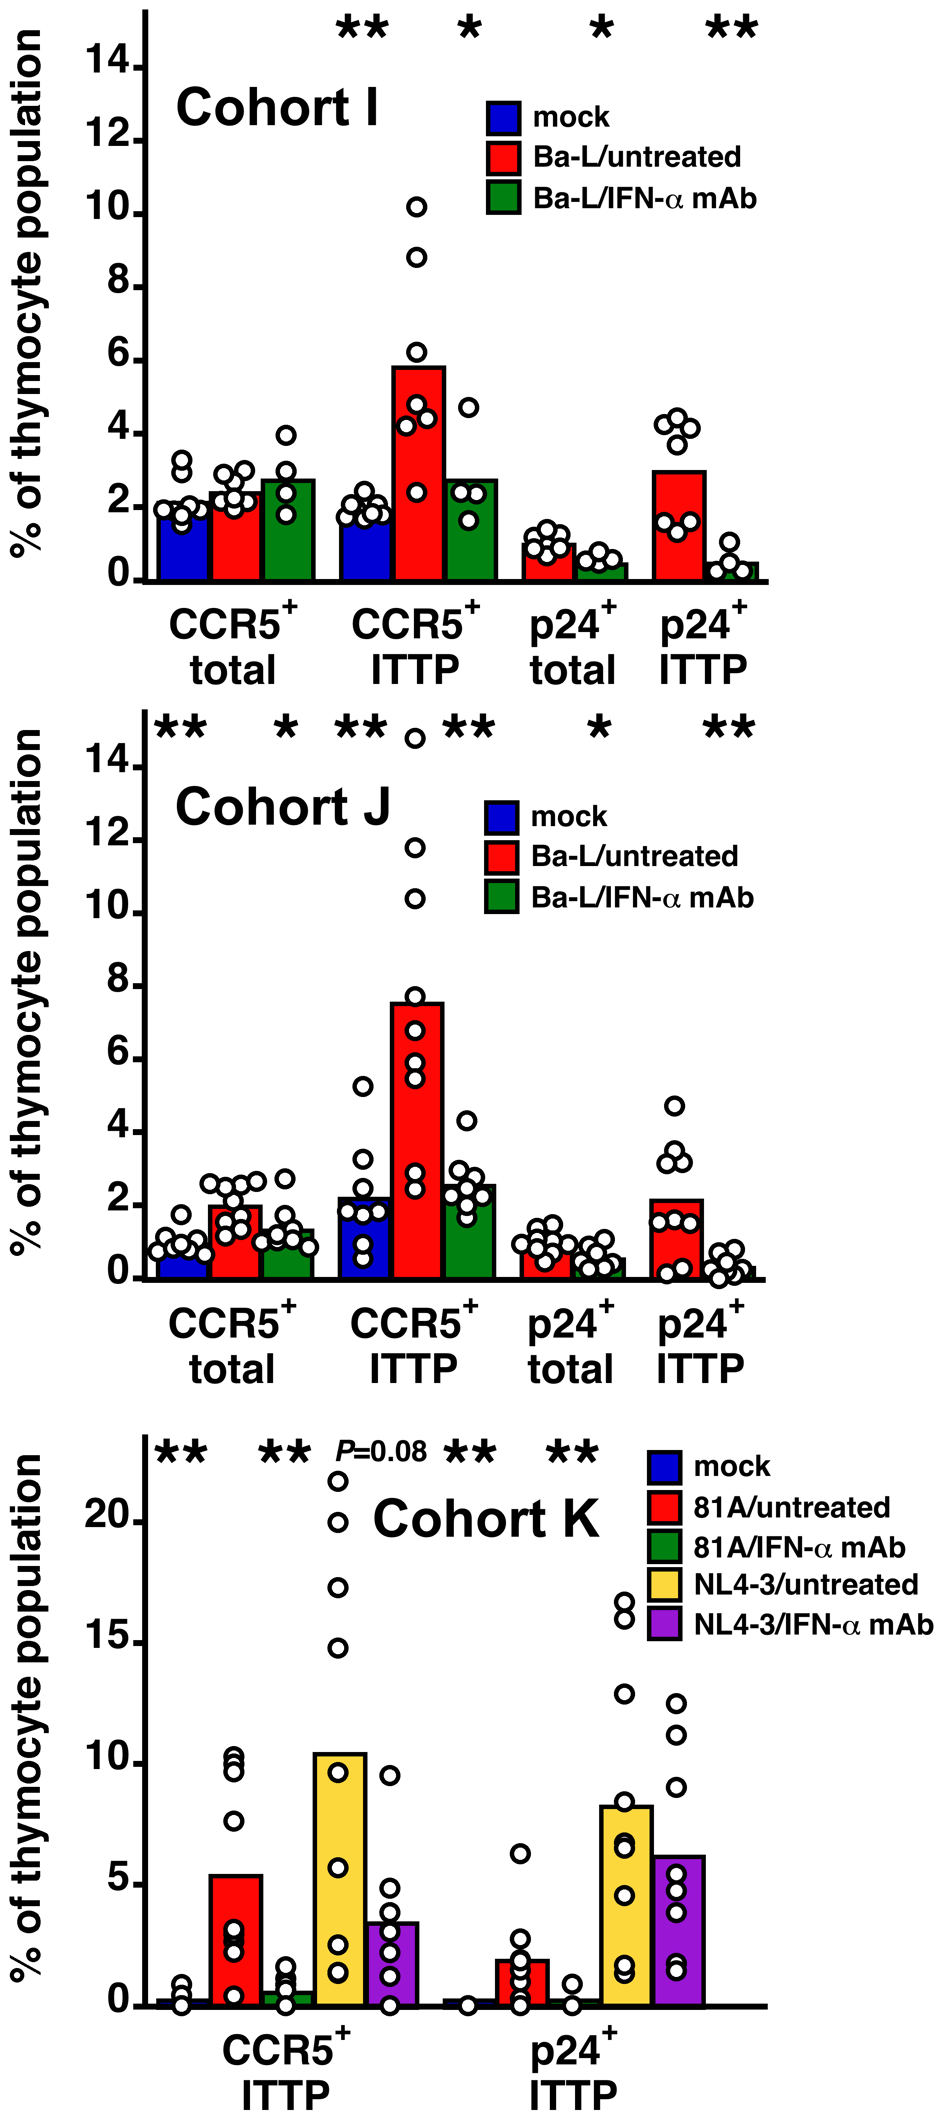 Neutralization of IFN-α inhibits CCR5 induction and HIV infection of ITTP after R5 HIV, but not after X4 HIV, inoculation.